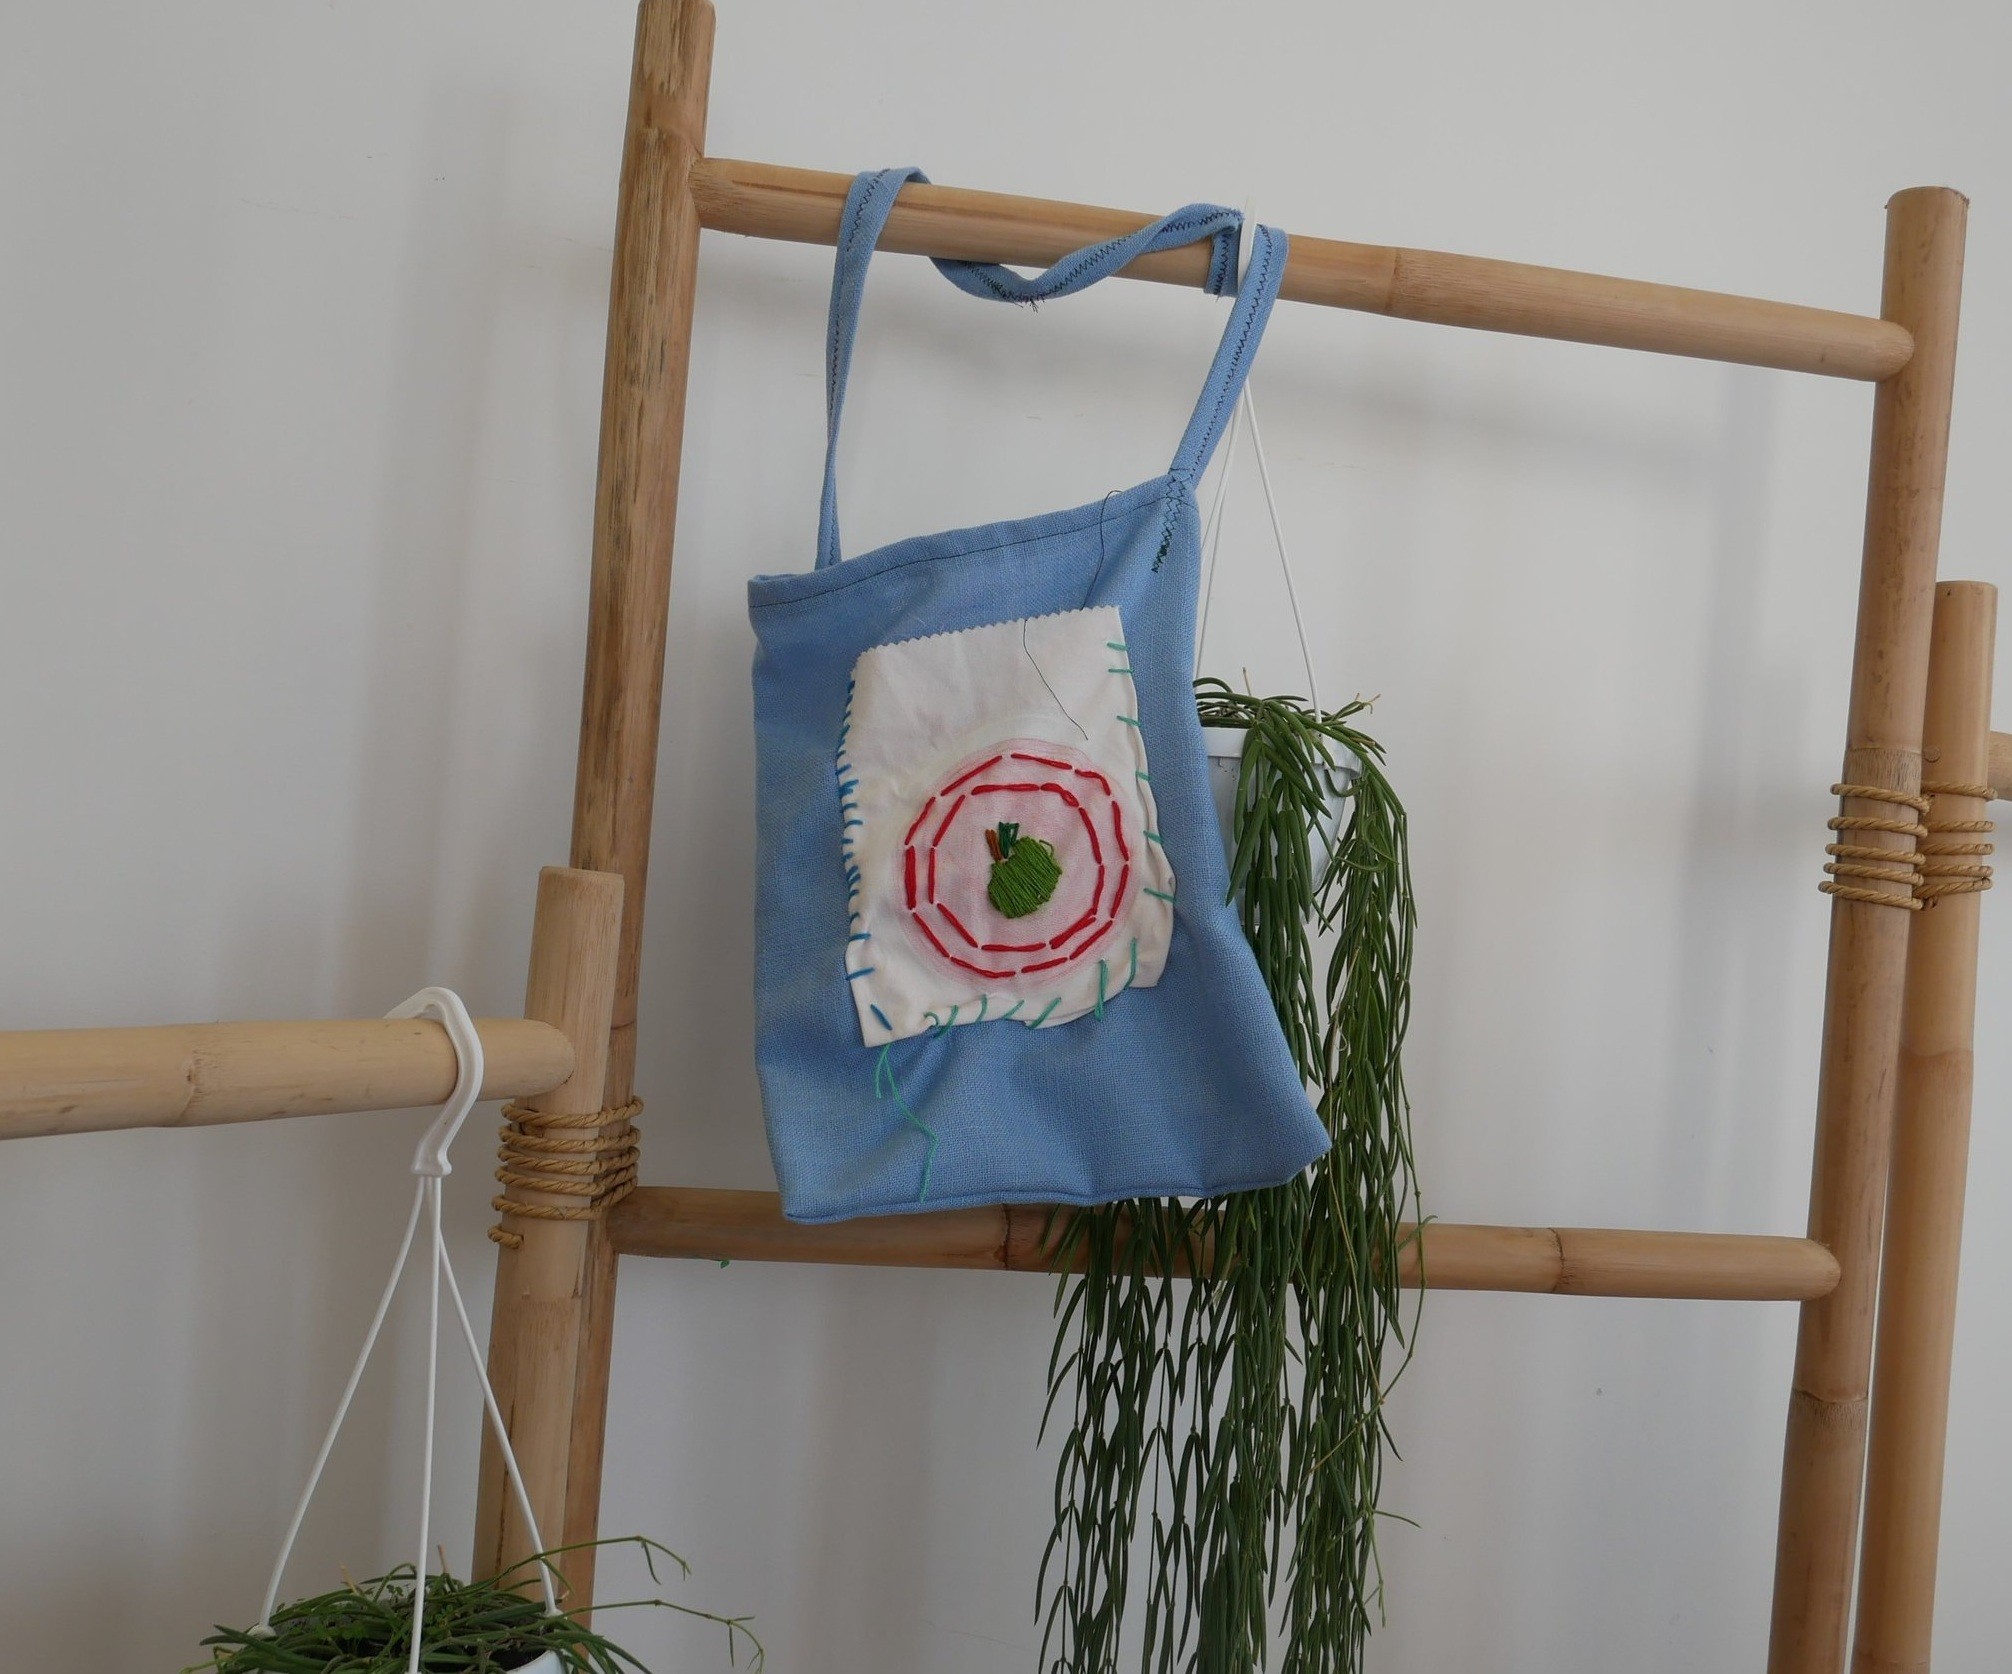 Embroidered Apple Tote  by Eliana Giancotti  HK$10,000